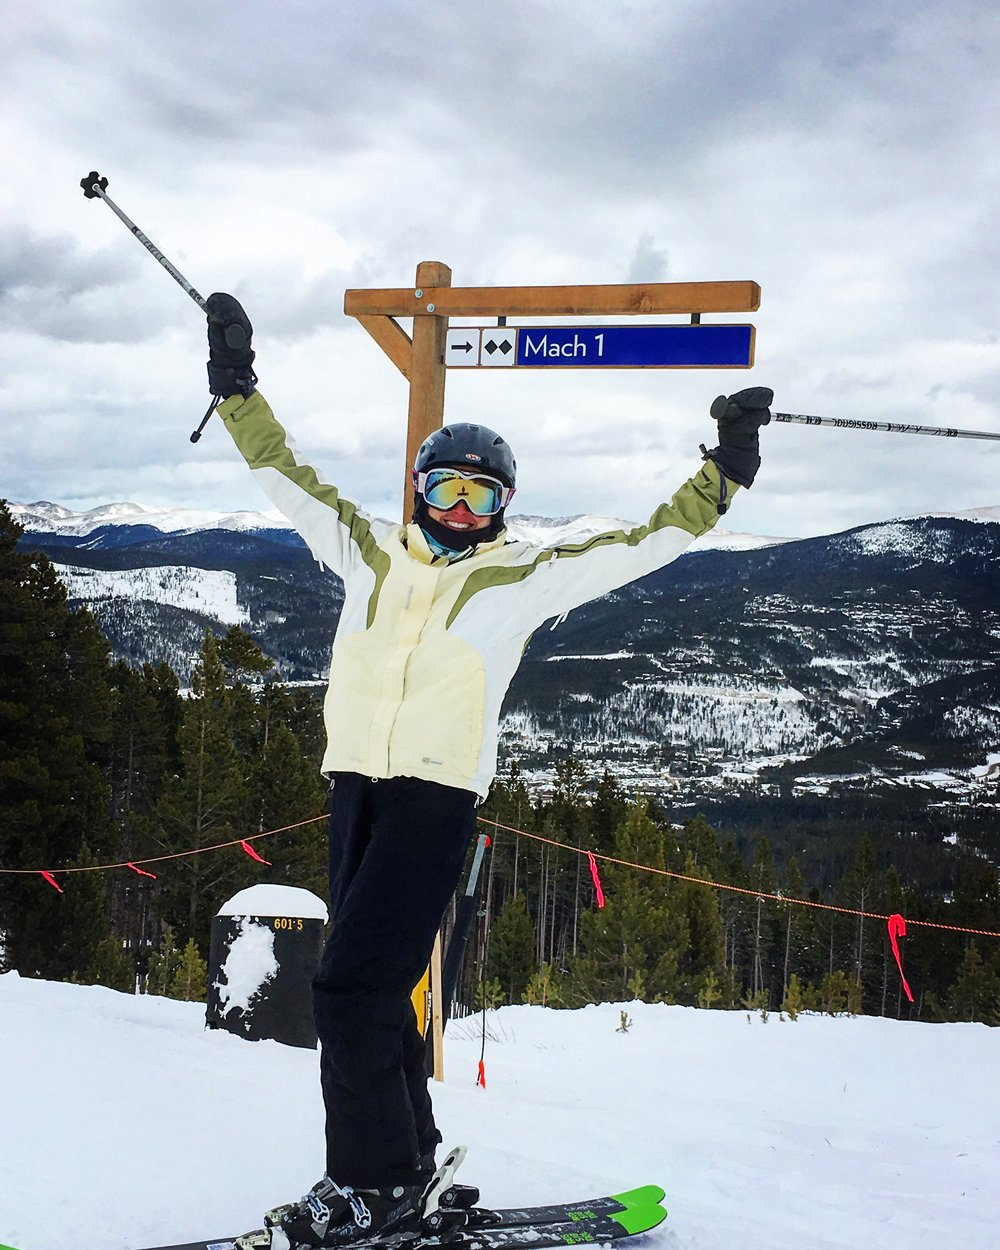 Shredding on some Double Black Diamonds in Breckenridge while on the interview trail in CO